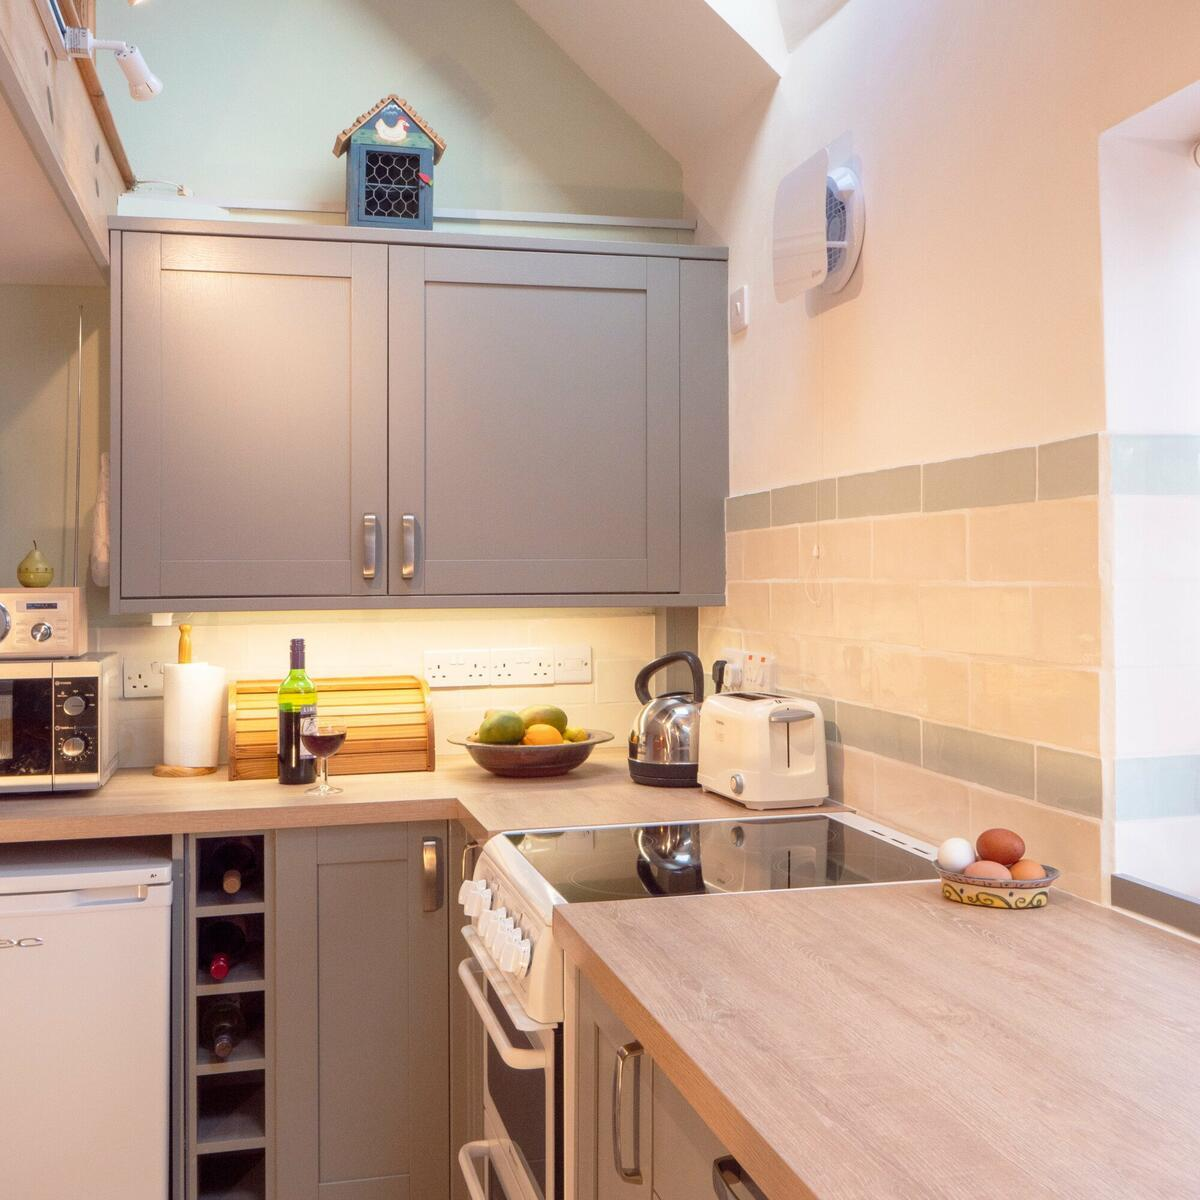 the new kitchen, lit from skylights above